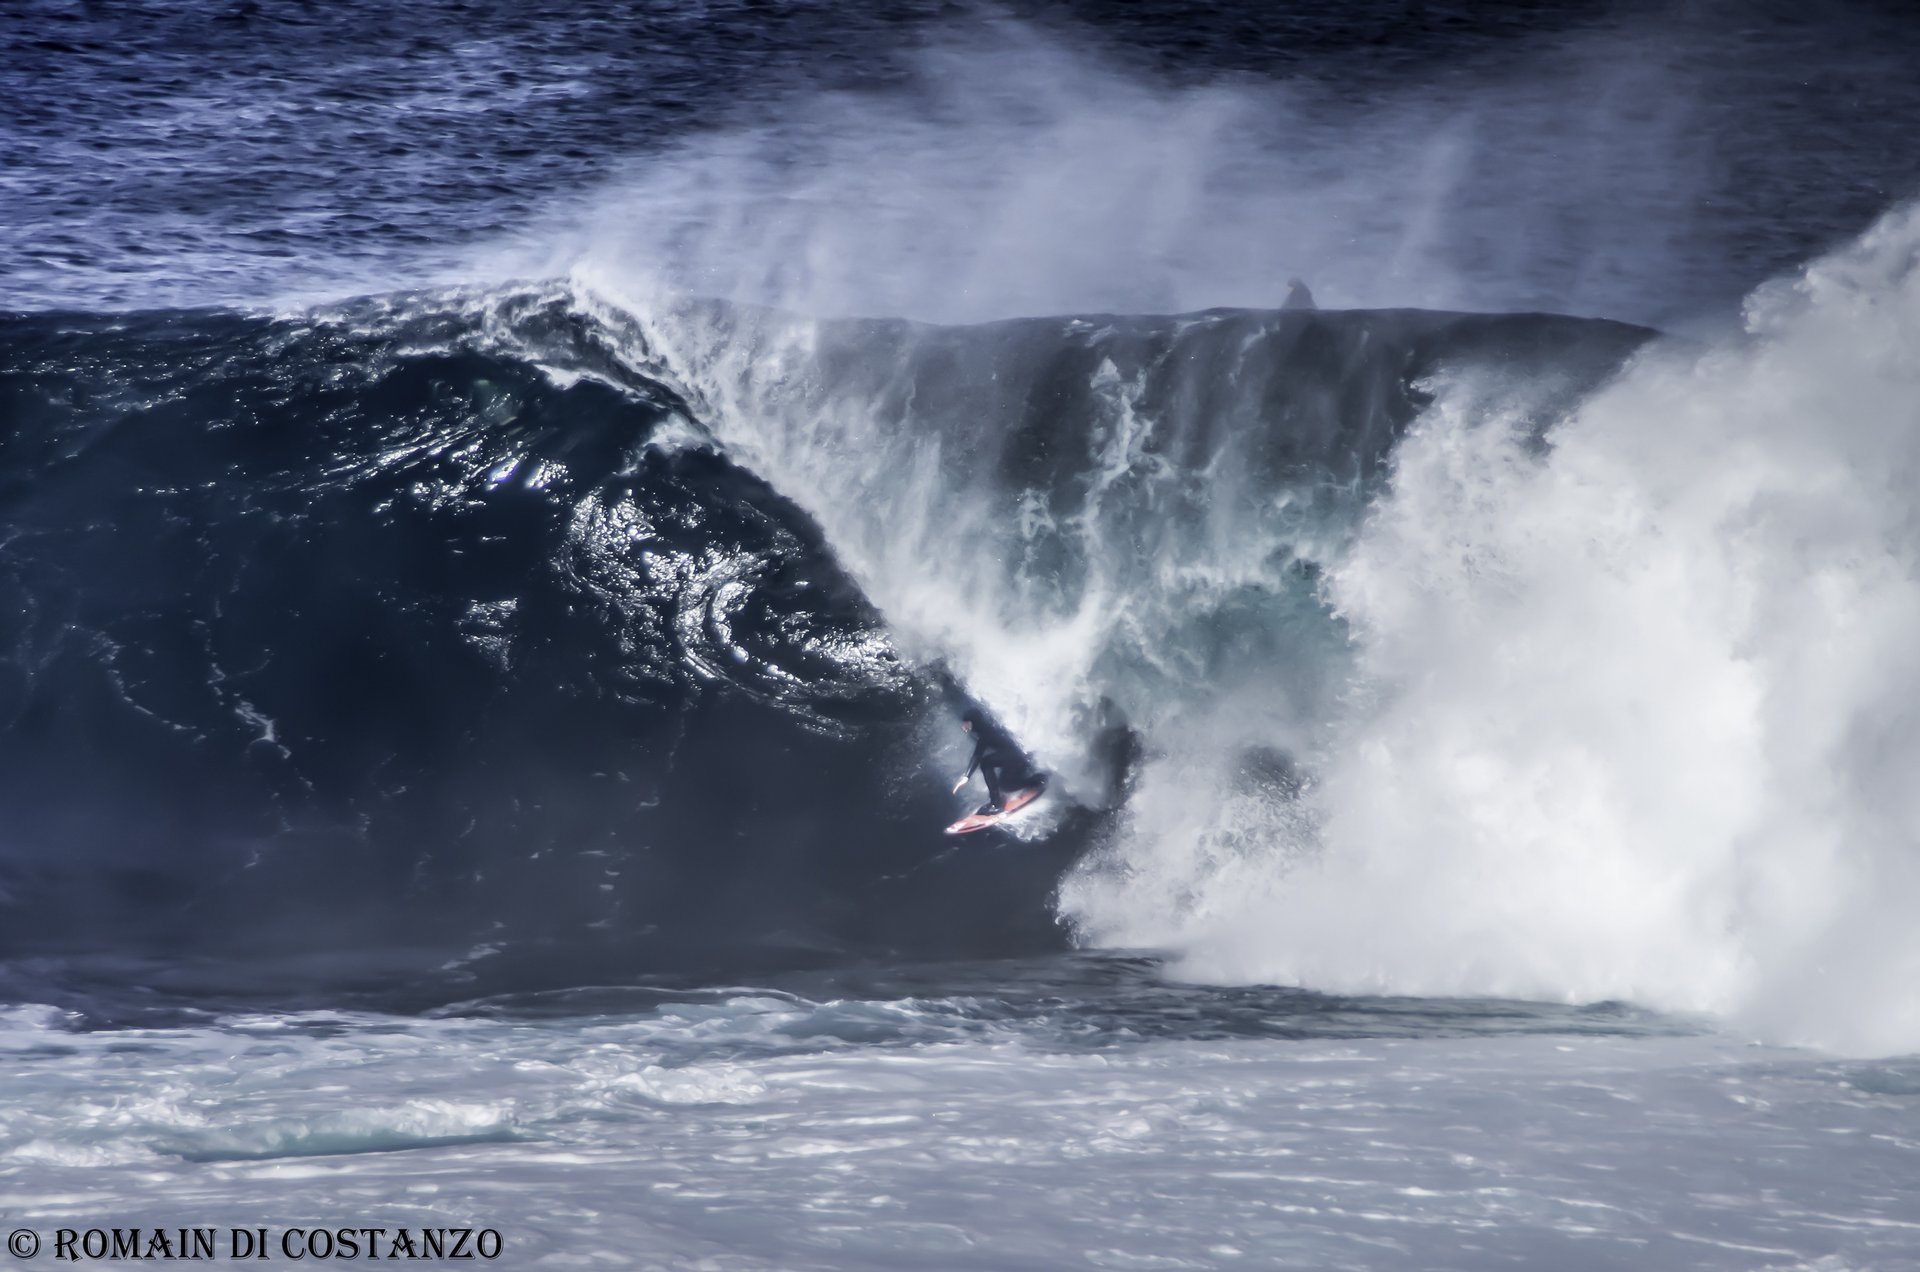 romdicos's photo of Shipstern Bluff